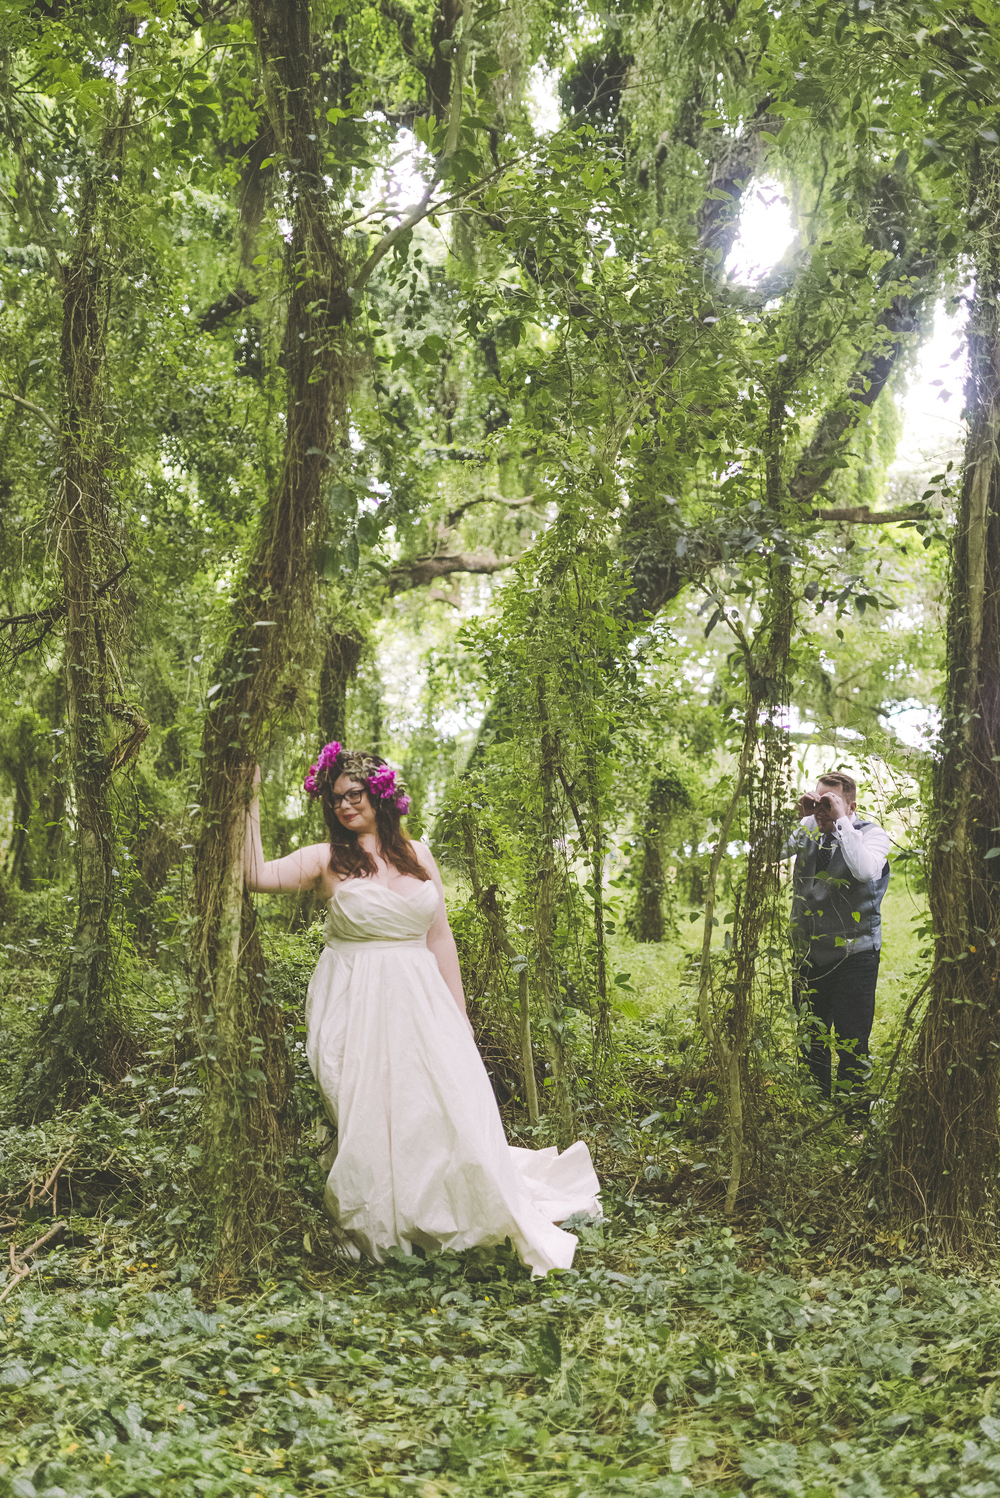 angie-diaz-photography-maui-elopement-91.jpg